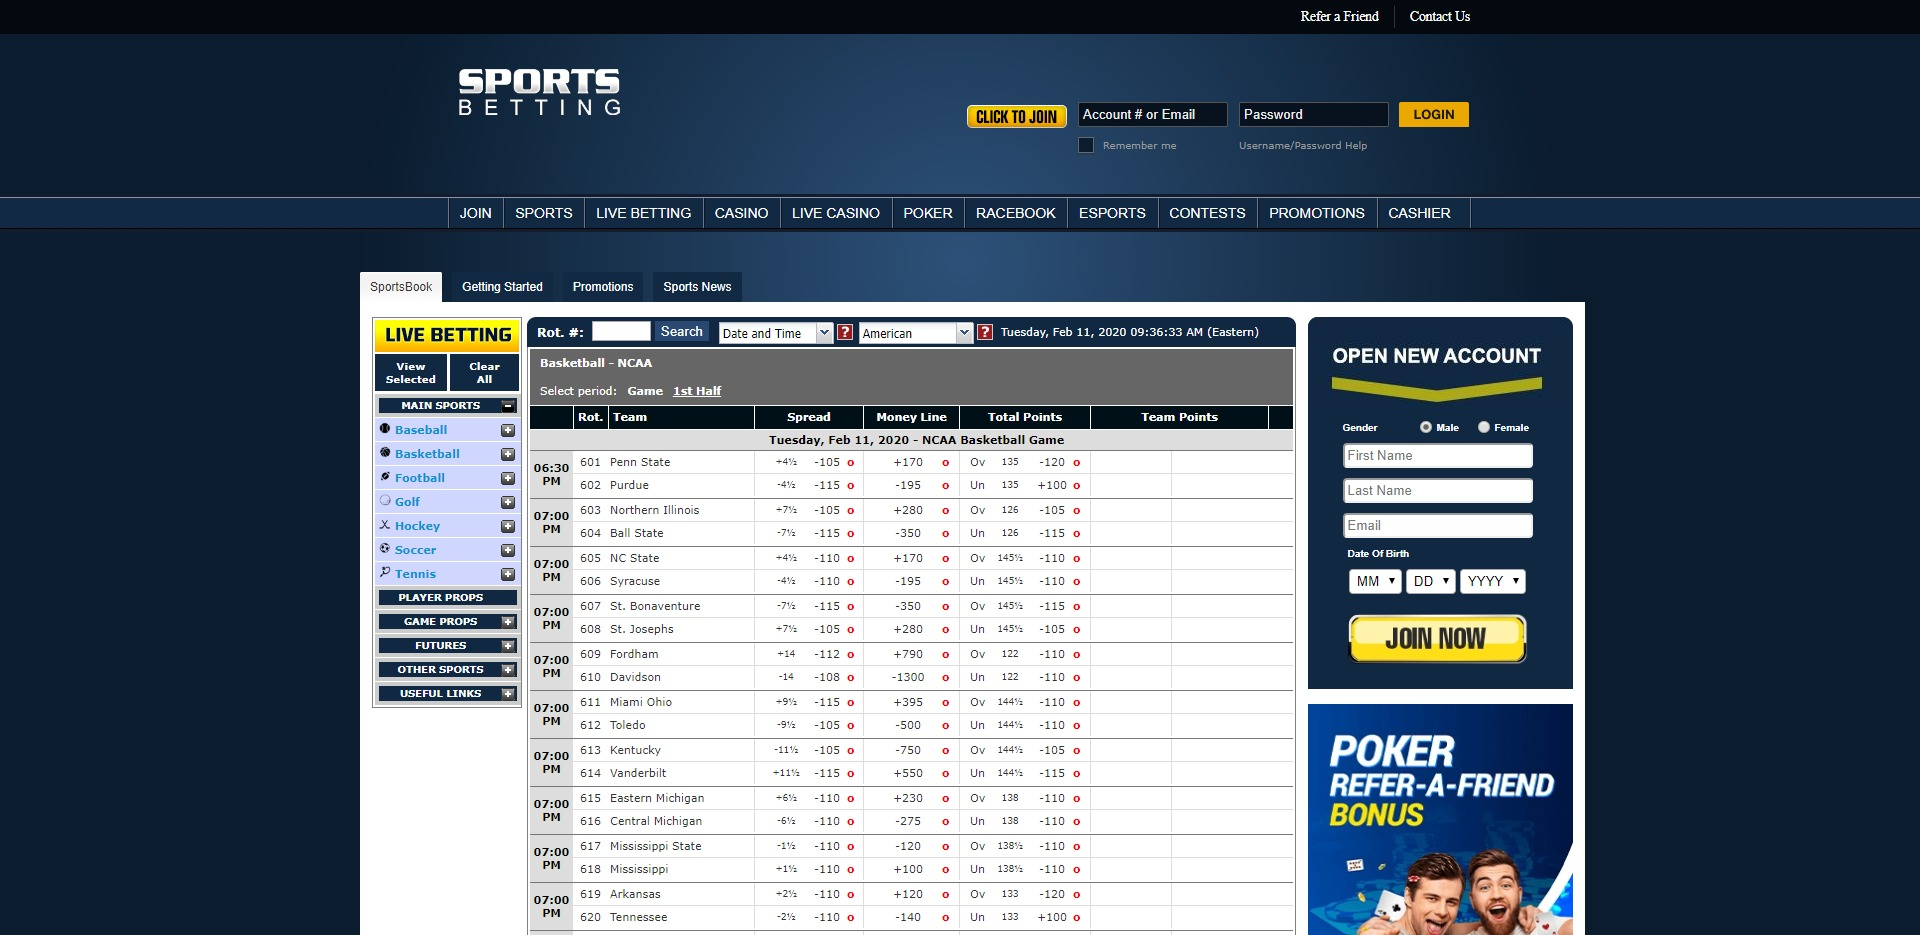 SPORTSBETTING.AG Preview